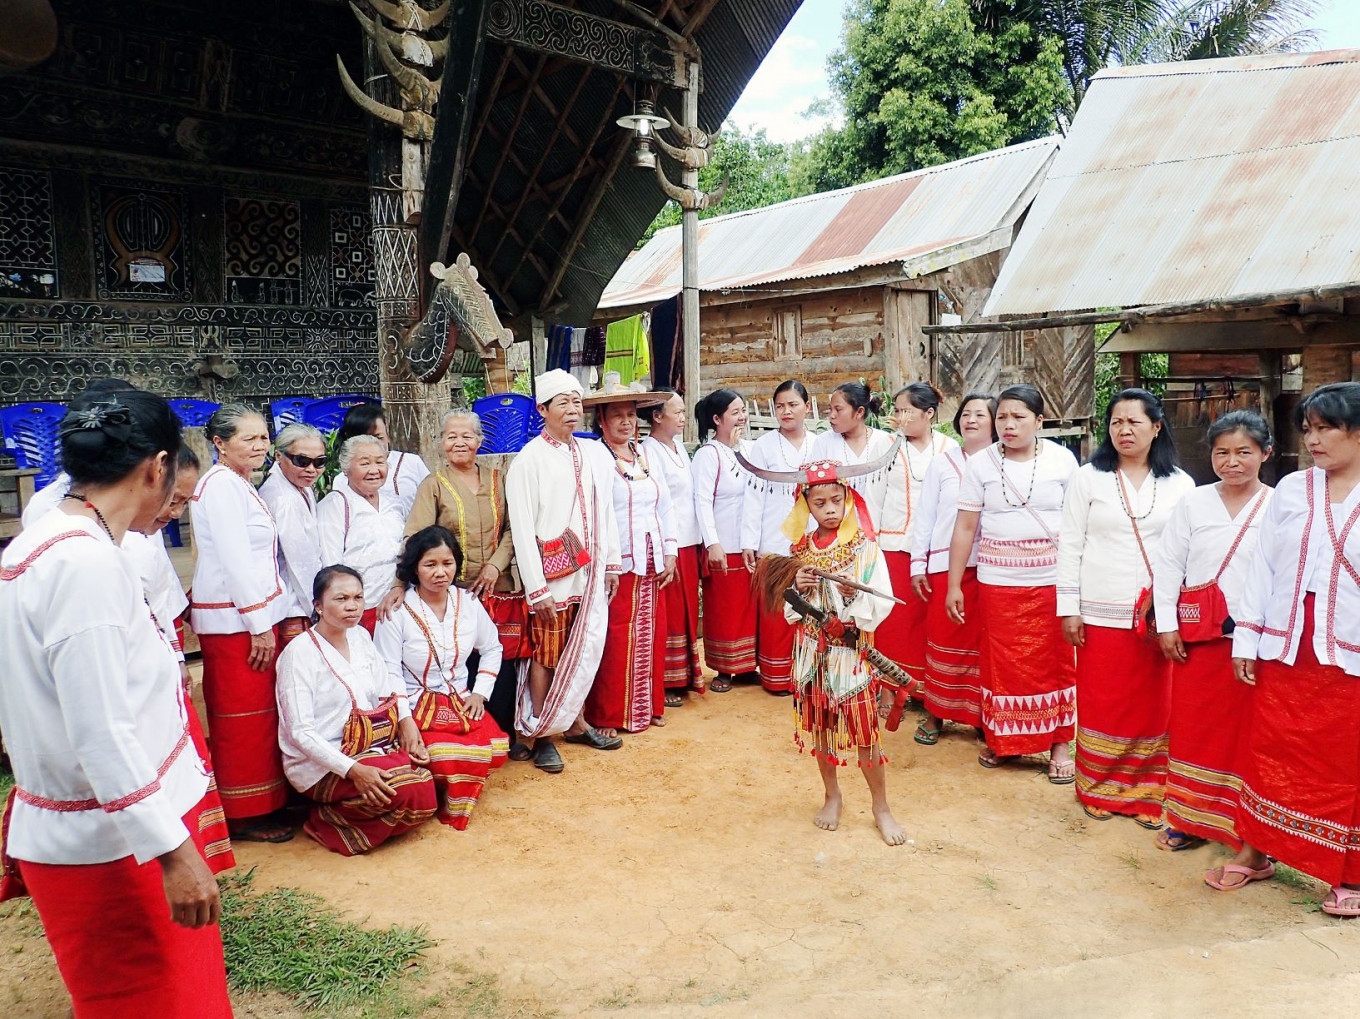 #WITTOCorona: Toraja Melo uplifts weavers affected by pandemic